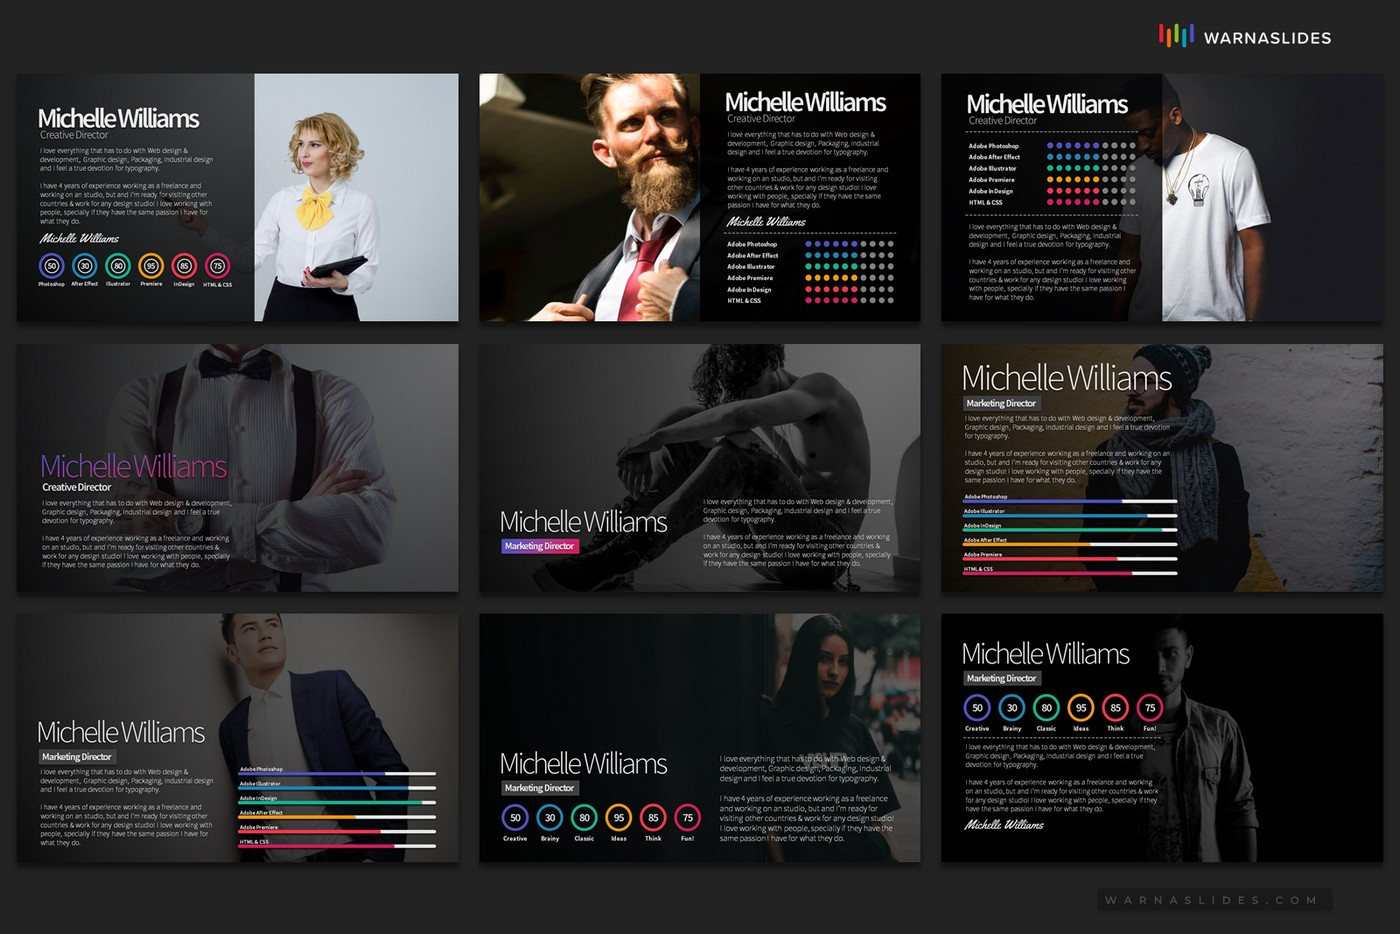 About-Me-Resume-Profile-PowerPoint-Template-2020-Skill-Expertise-for-Business-Pitch-Deck-Professional-Creative-Presentation-by-Warna-Slides-013